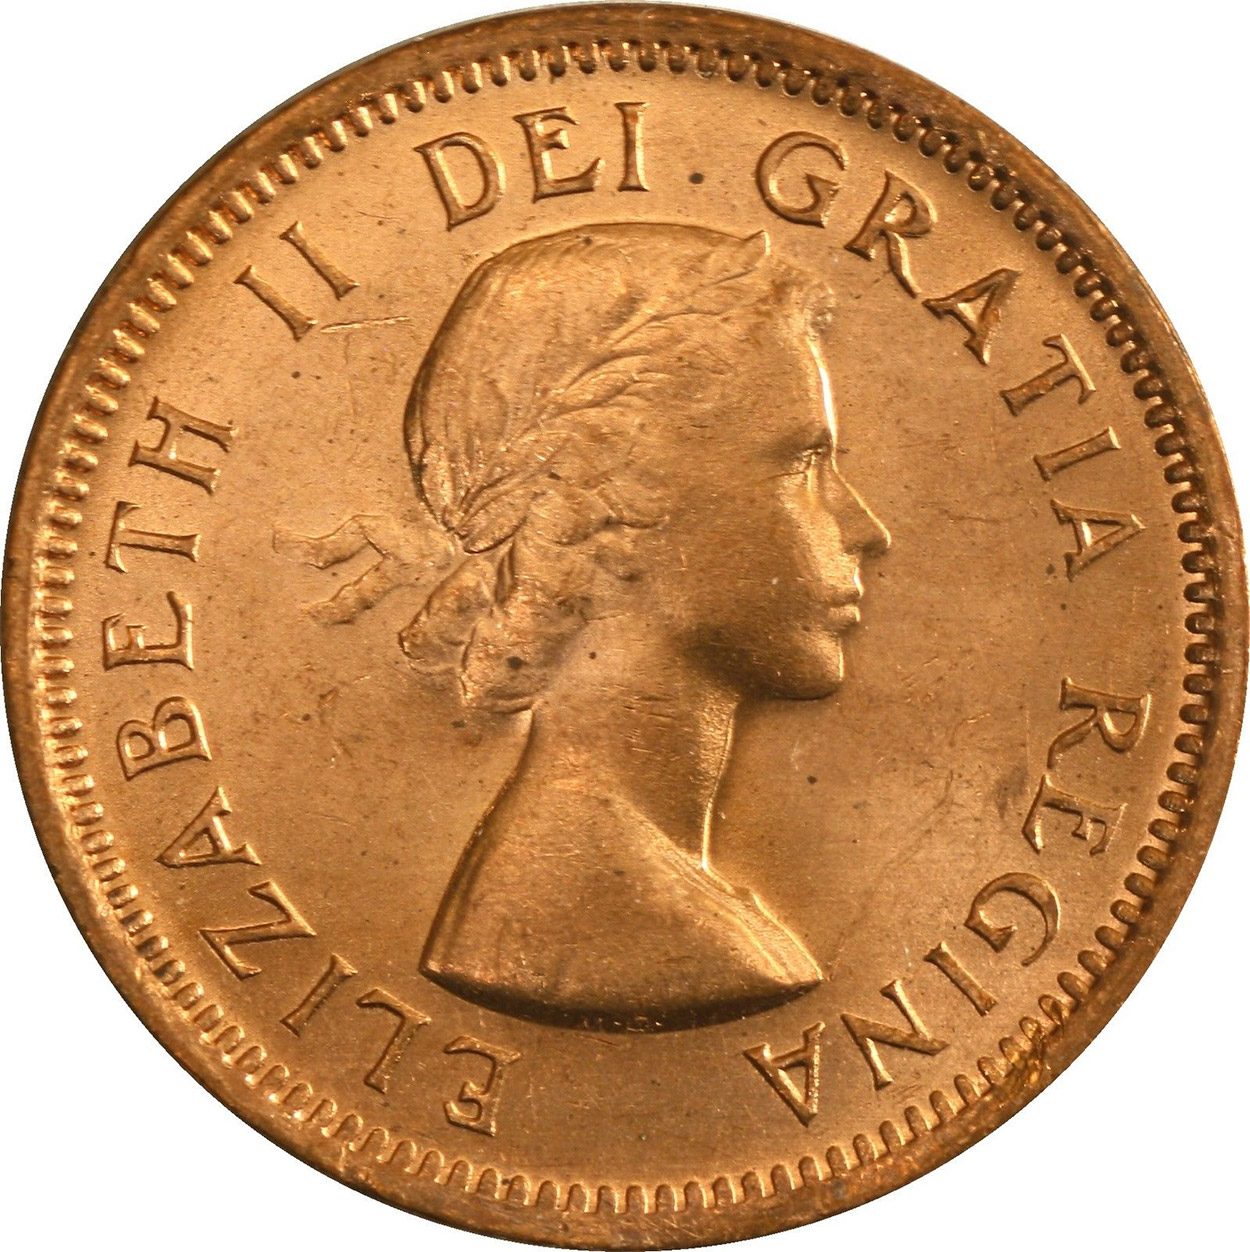 MS-60 - 1 cent 1953 to 1964 - Elizabeth II